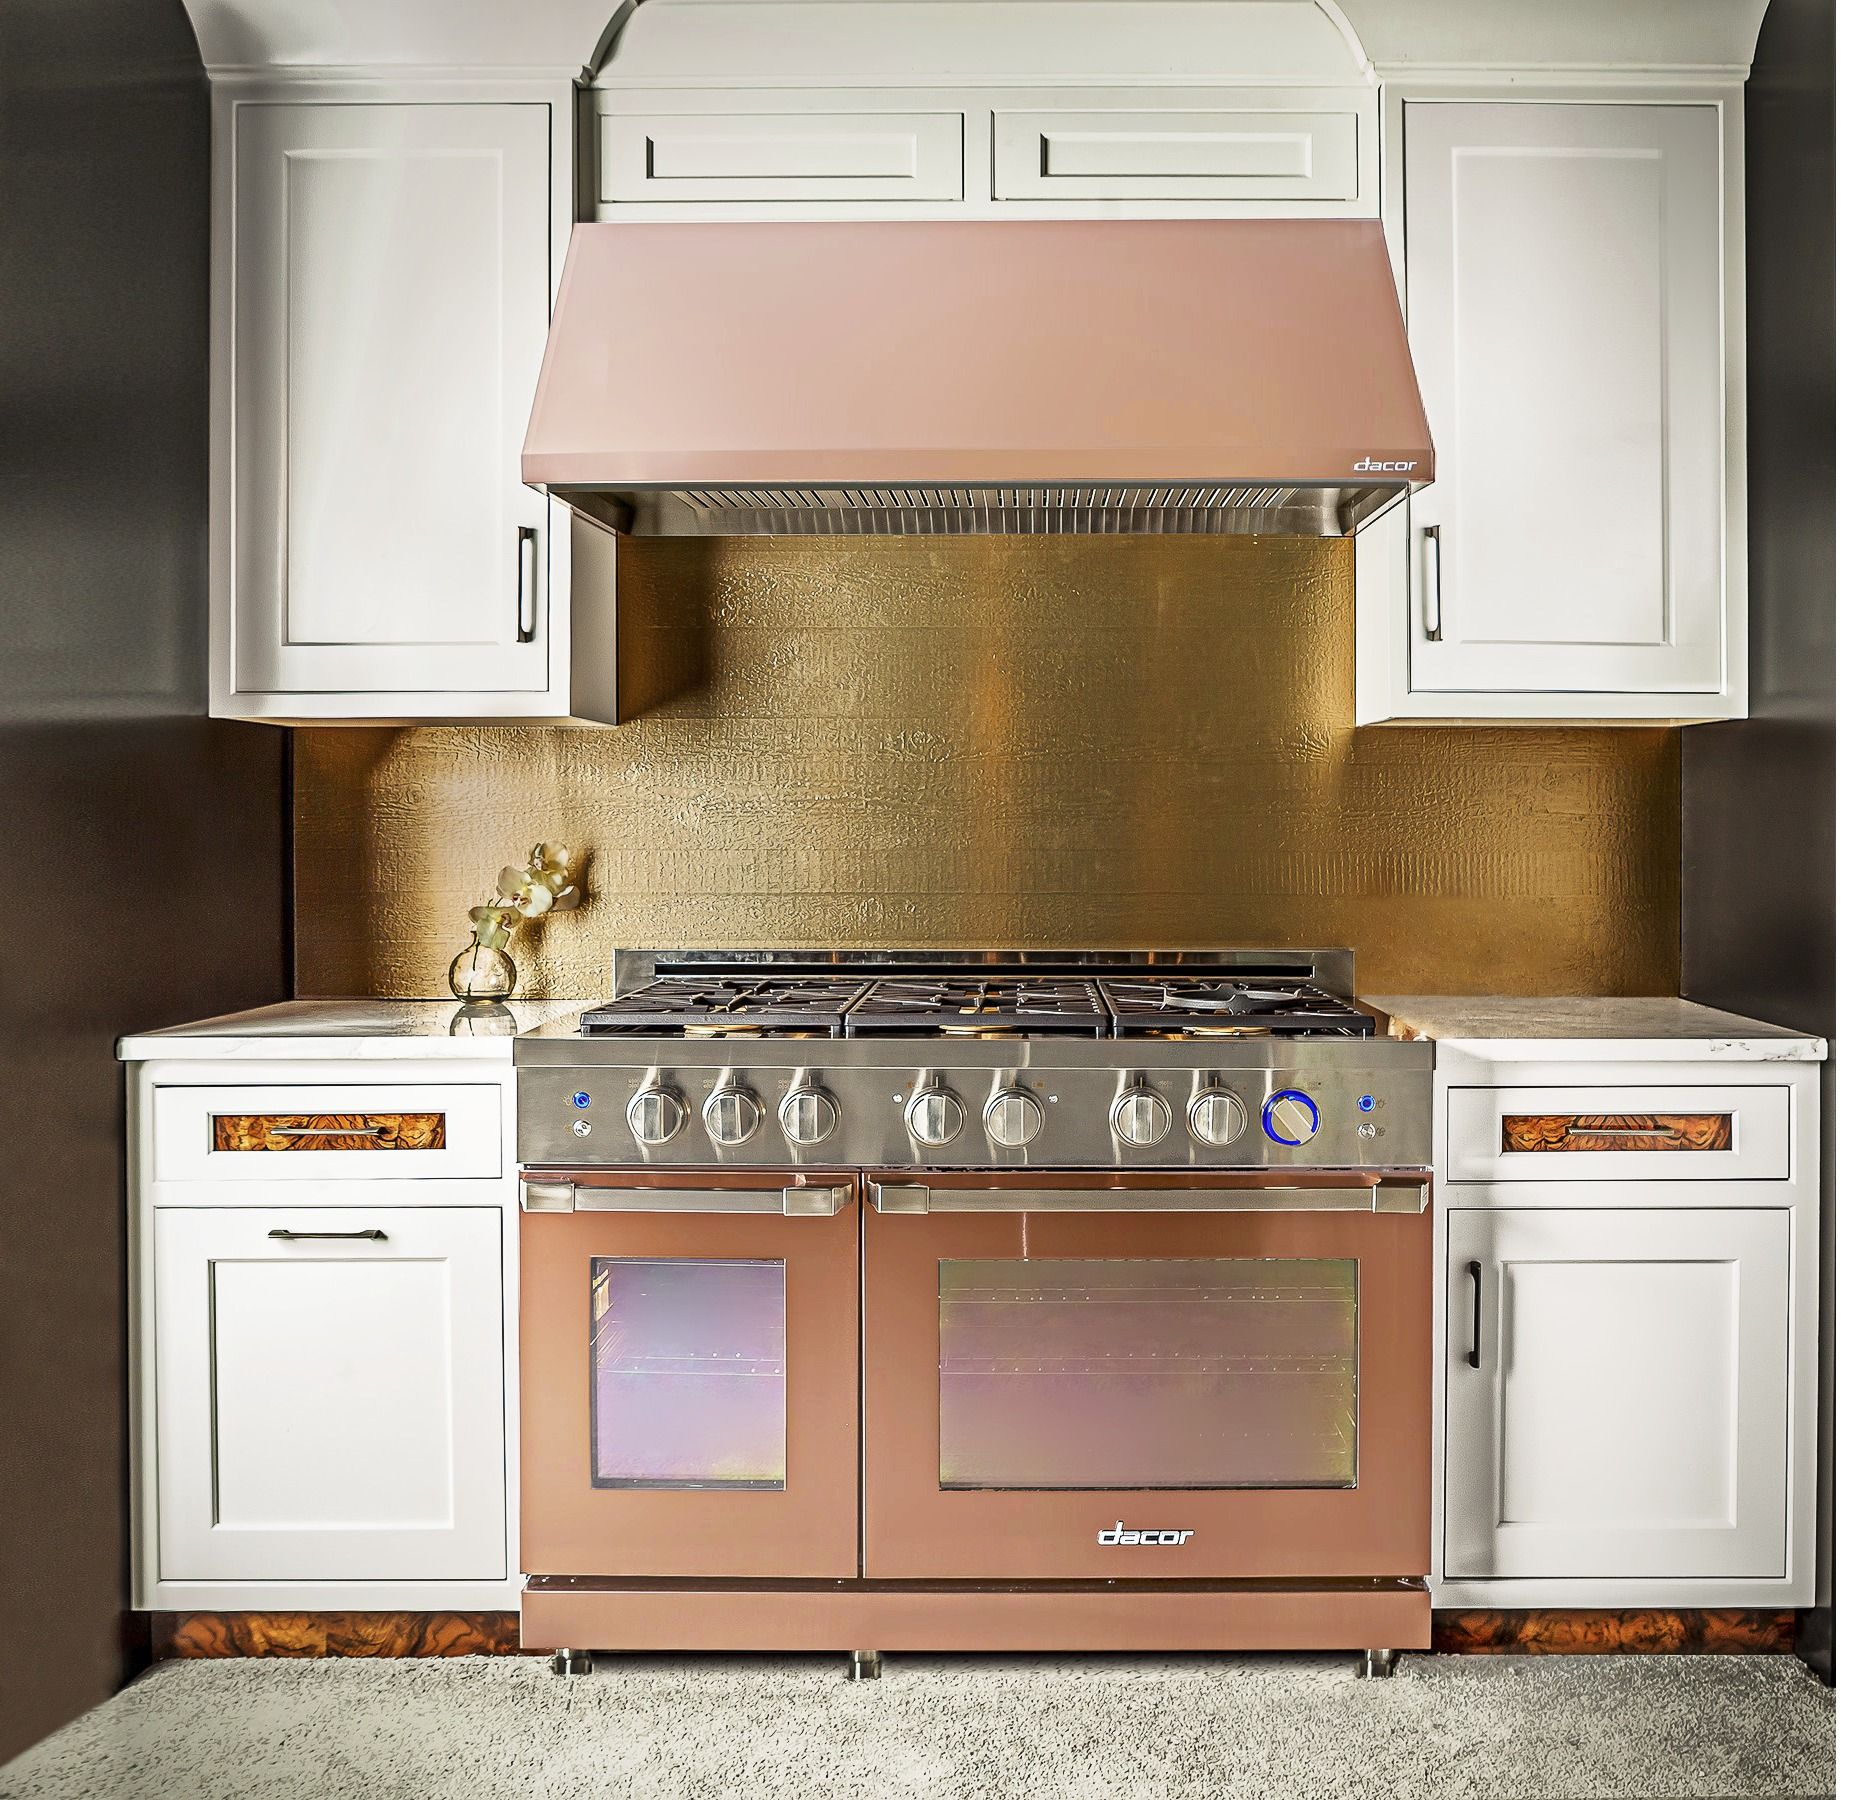 10 Kitchen Trends You Need To Know About Right Now Rose Gold Kitchen Rose Gold Kitchen Appliances Kitchen Trends